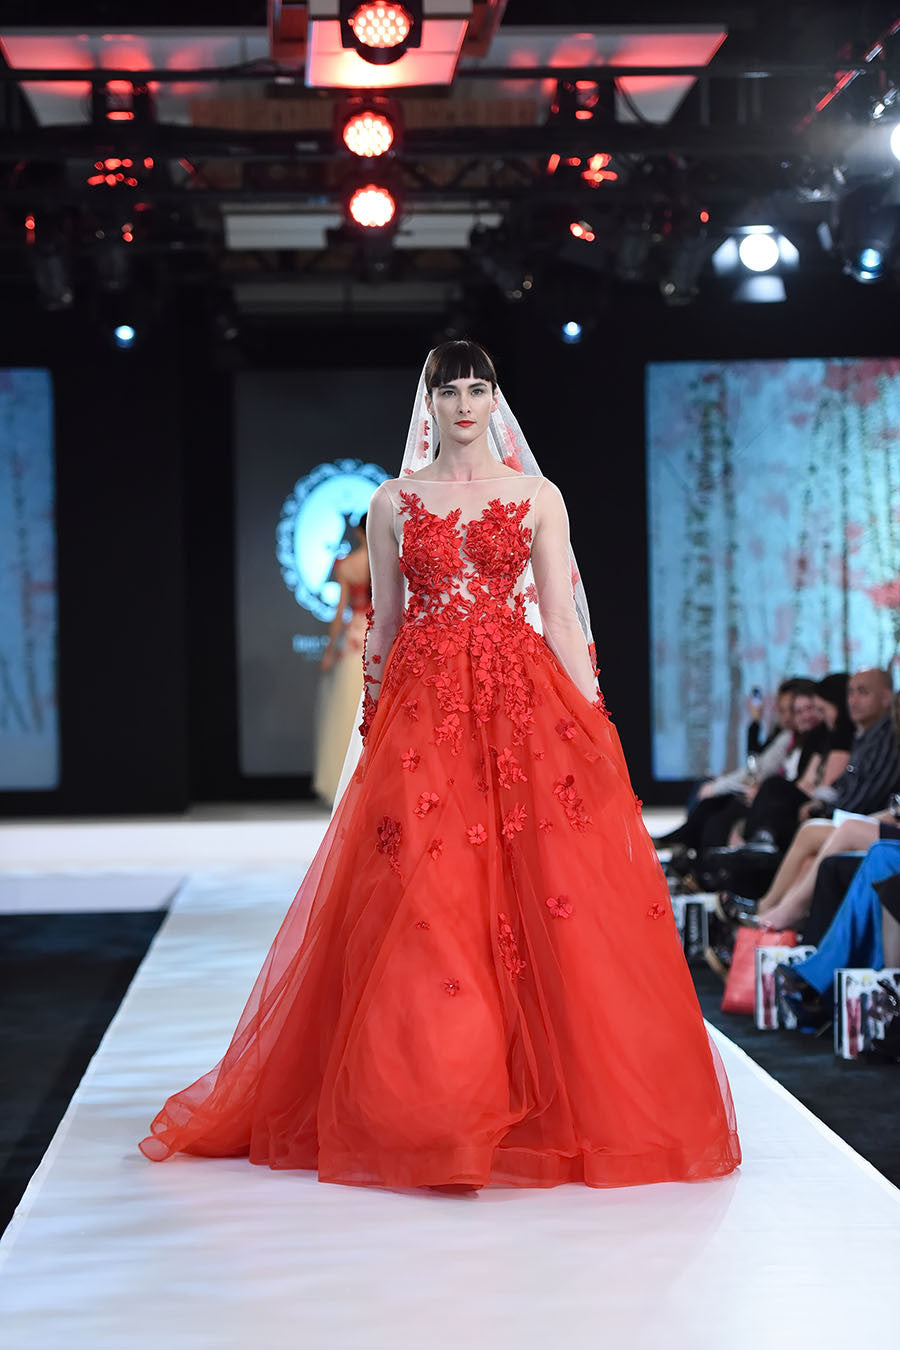 Red Ball Gown (Style Veronica #FW16101) - Dream Dresses by P.M.N  - 1